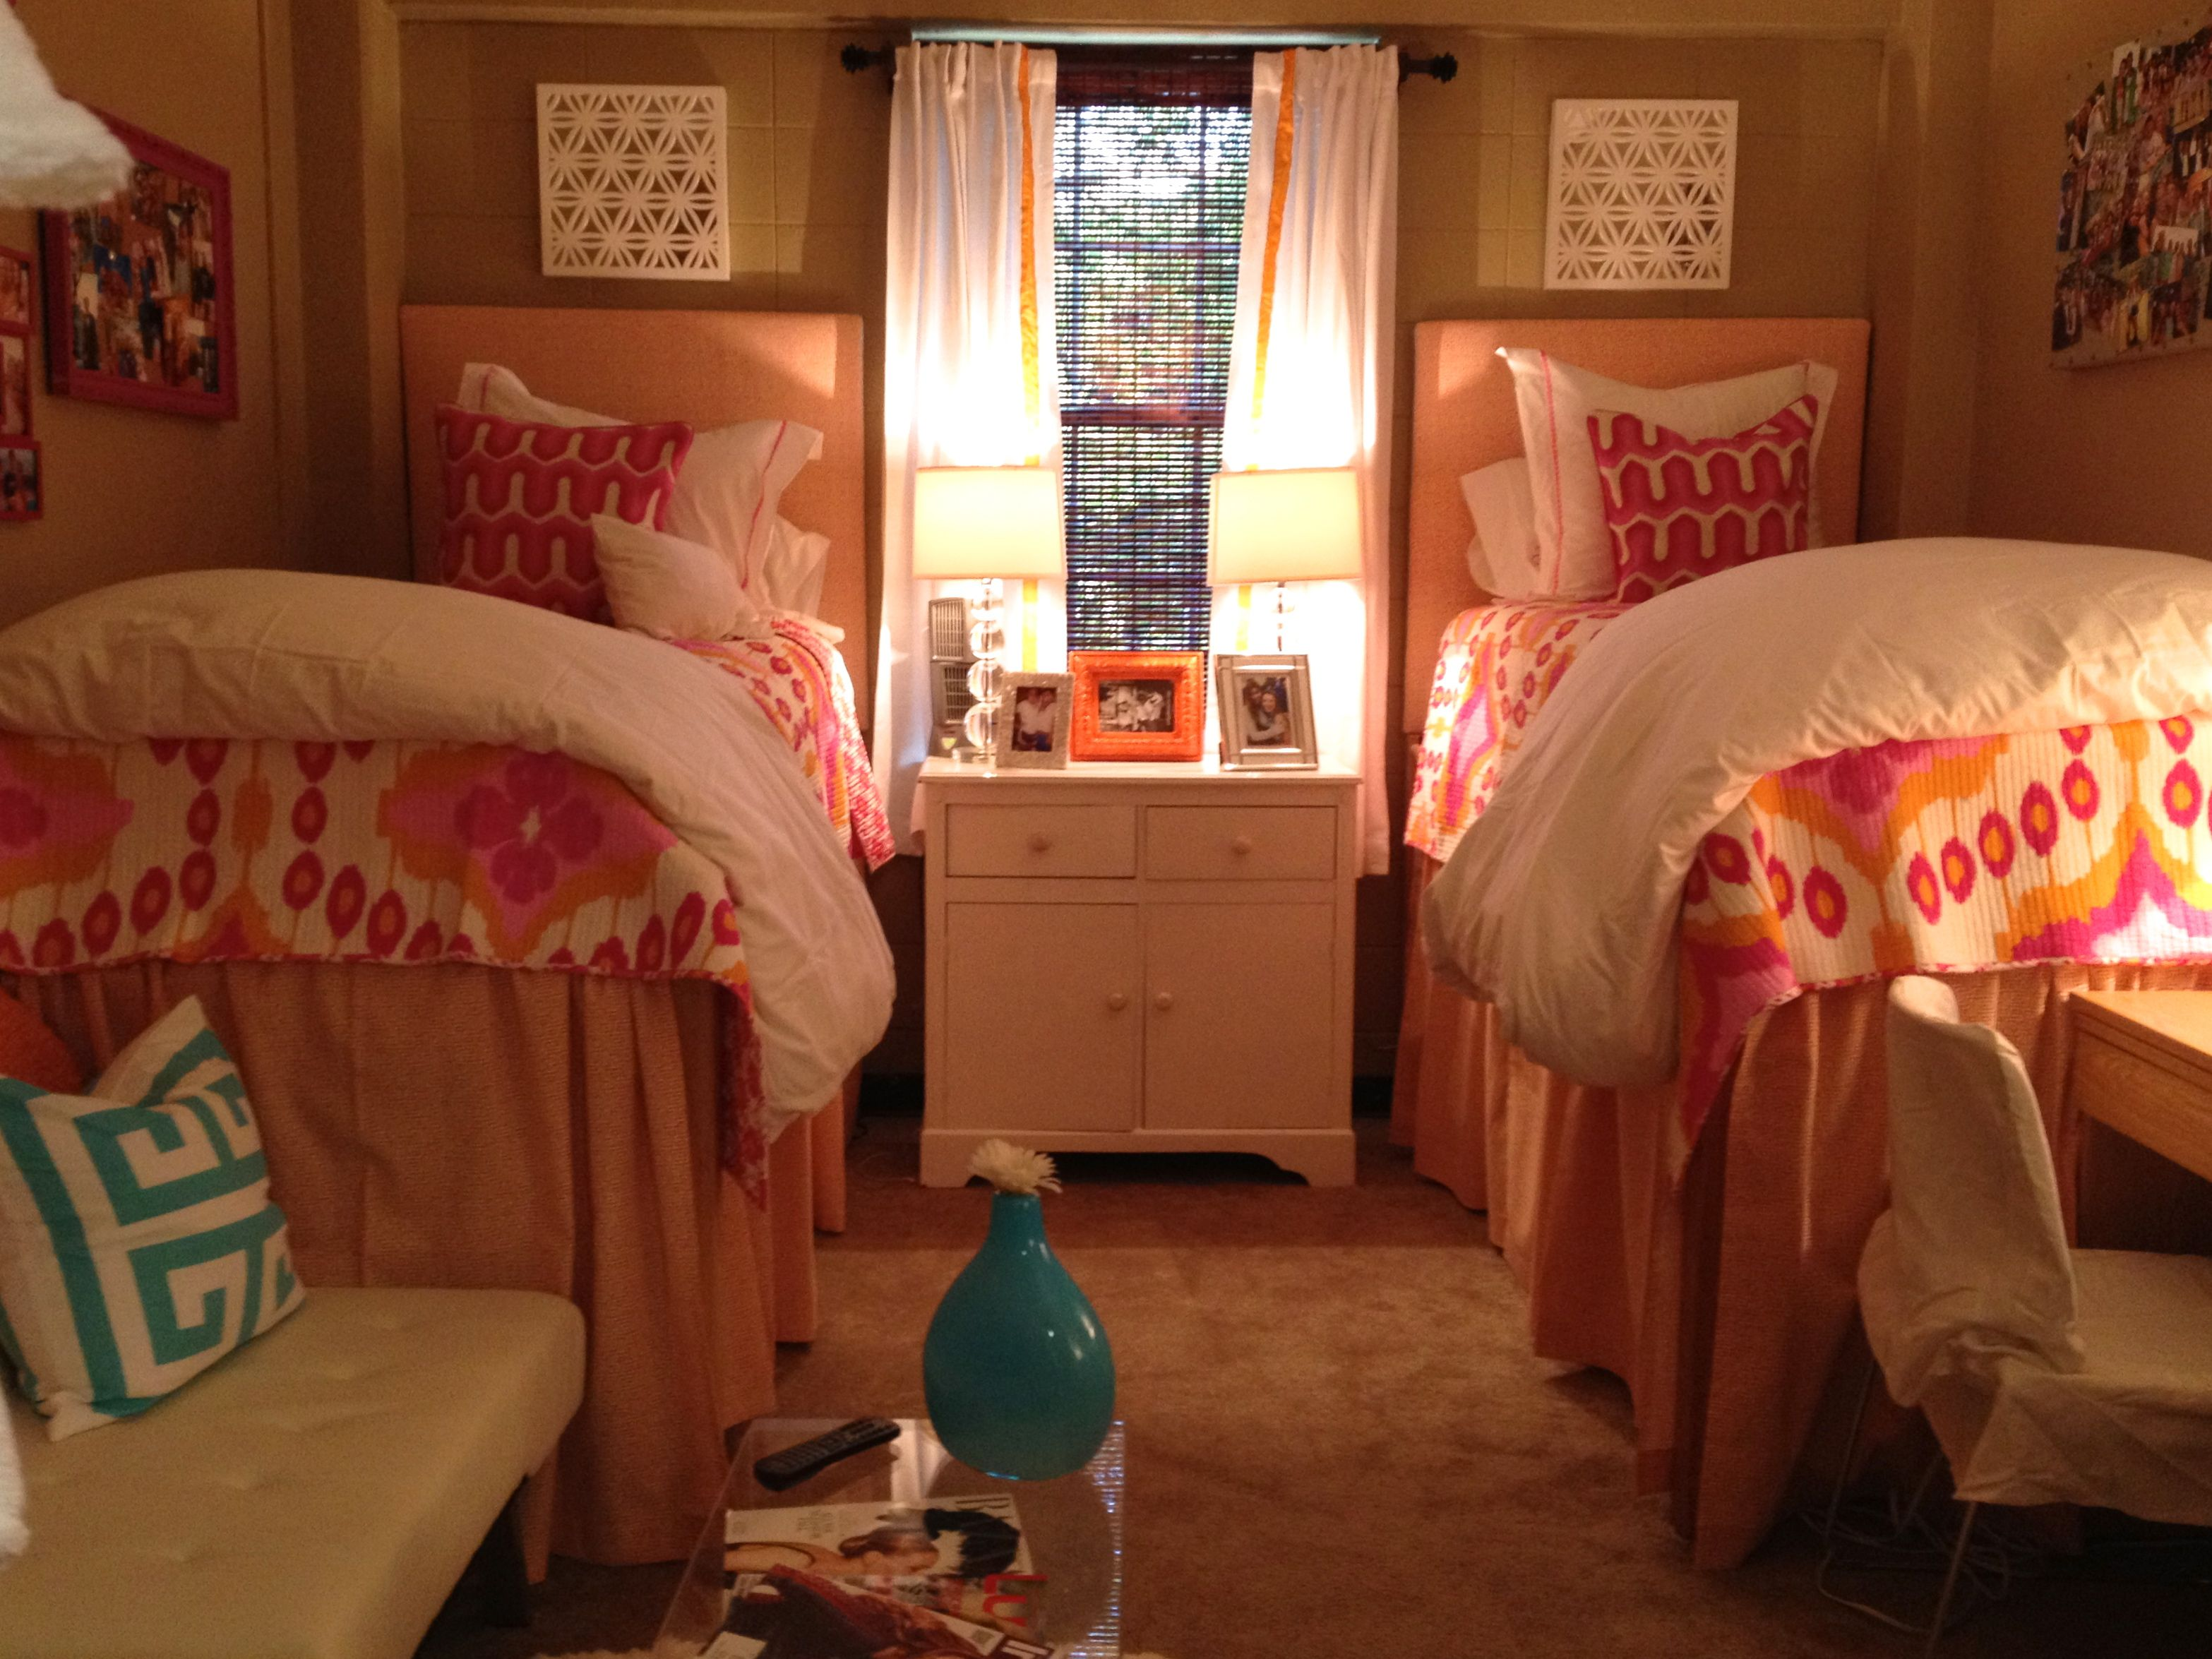 Ole Miss Dorm Room p.s. @ Nat- this reminds me of that dress you ...